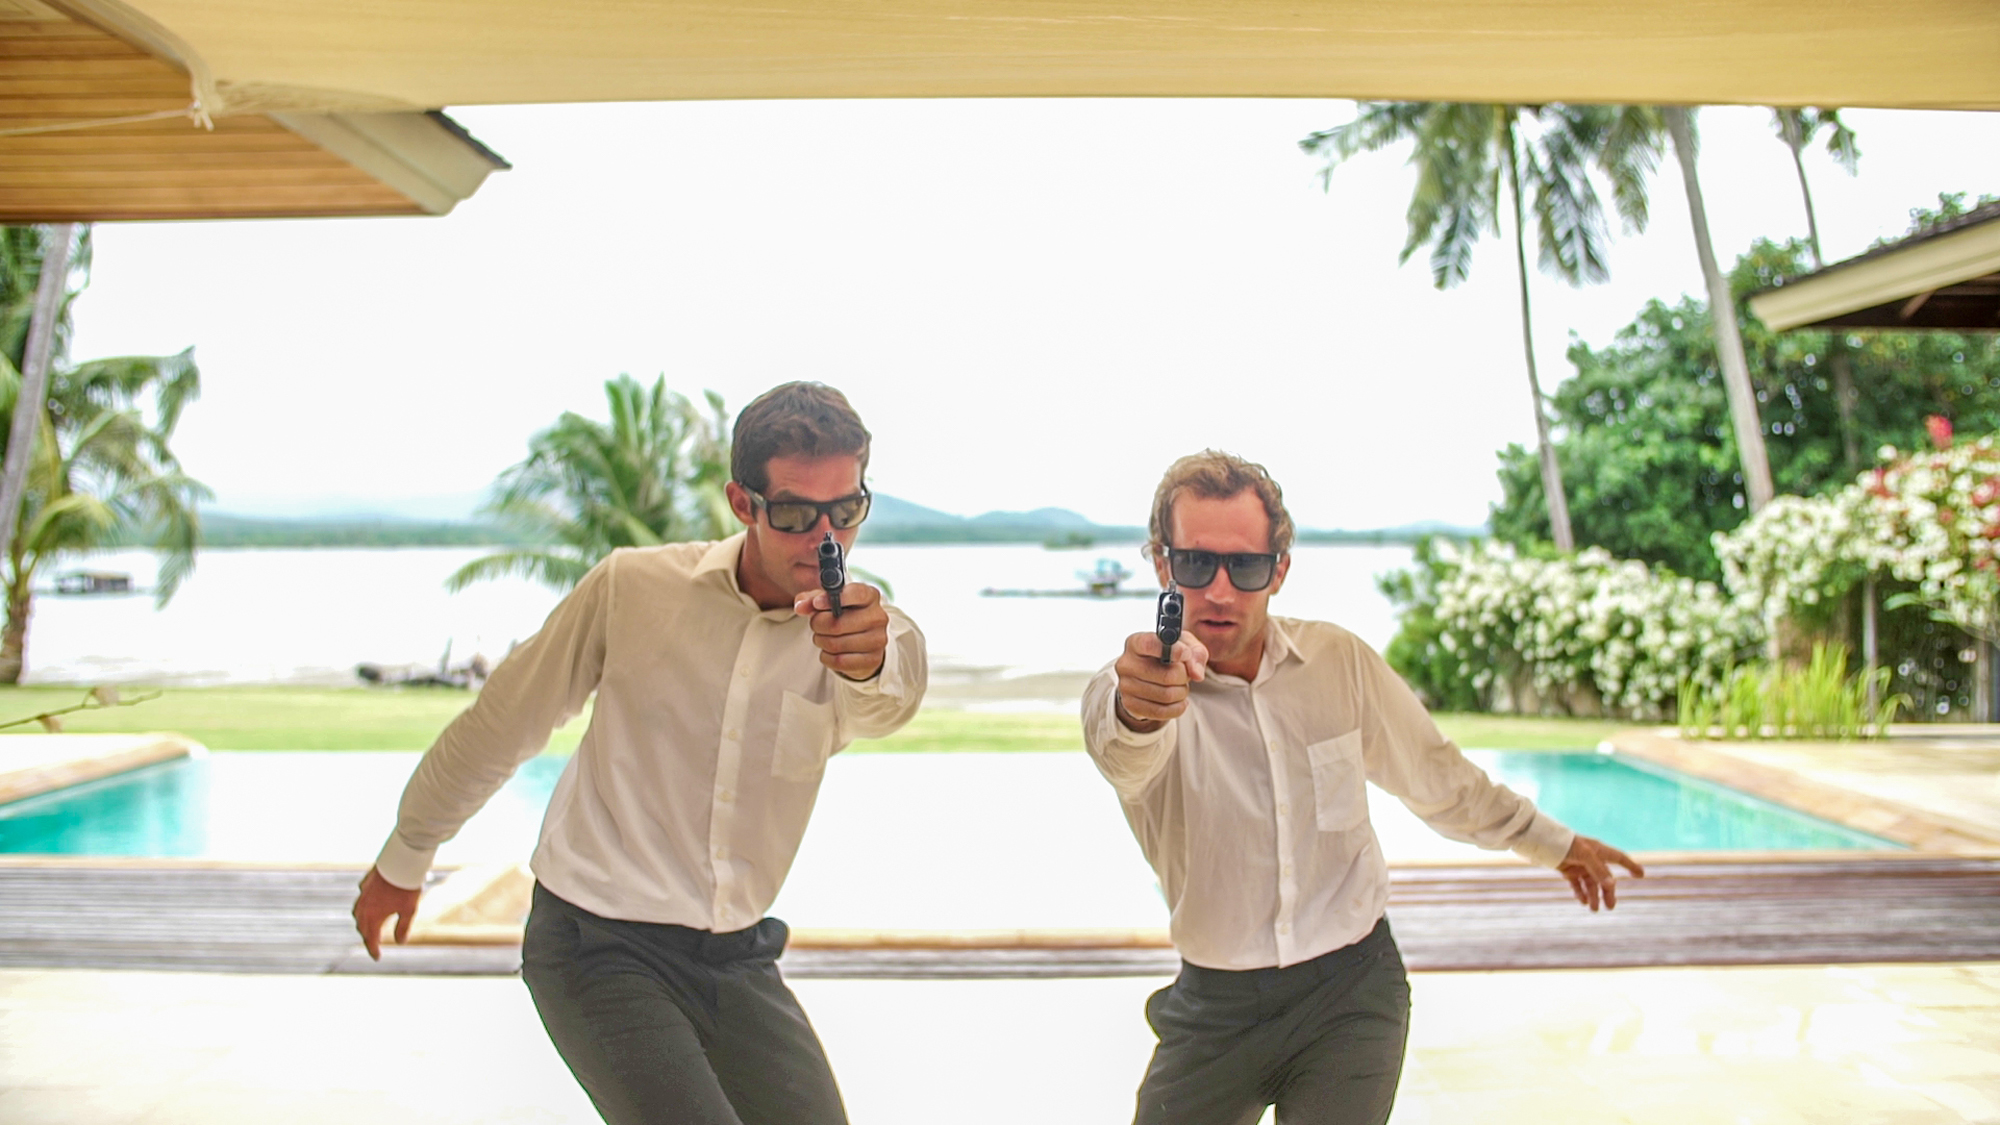 Don't Try This at Home James Bond Martin Schricke & Francois Ragolski